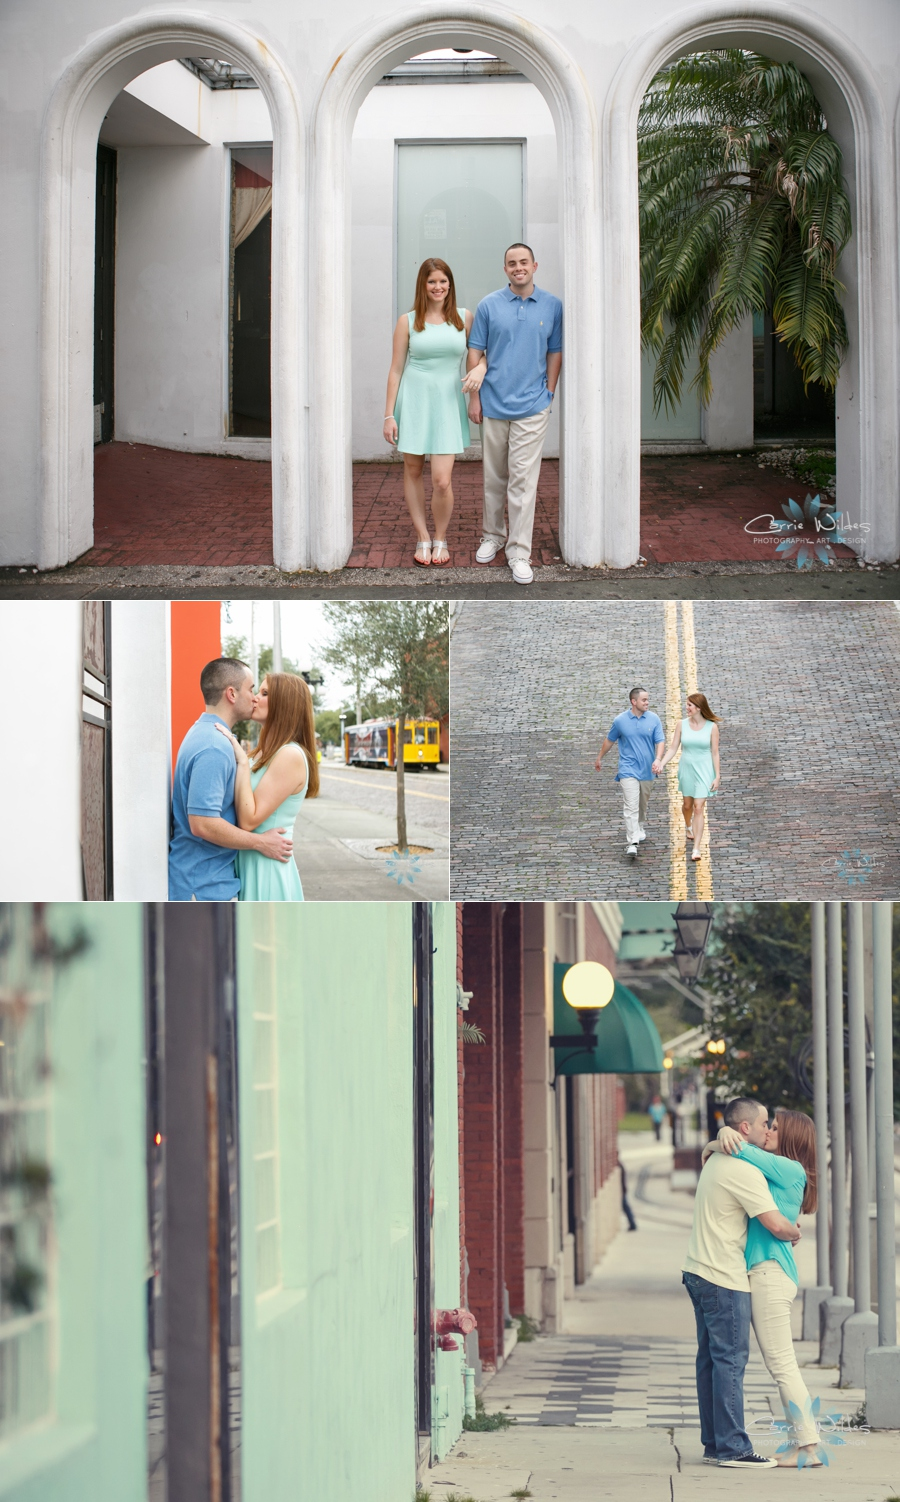 10_3_13 Ybor Engagement Session_0001.jpg